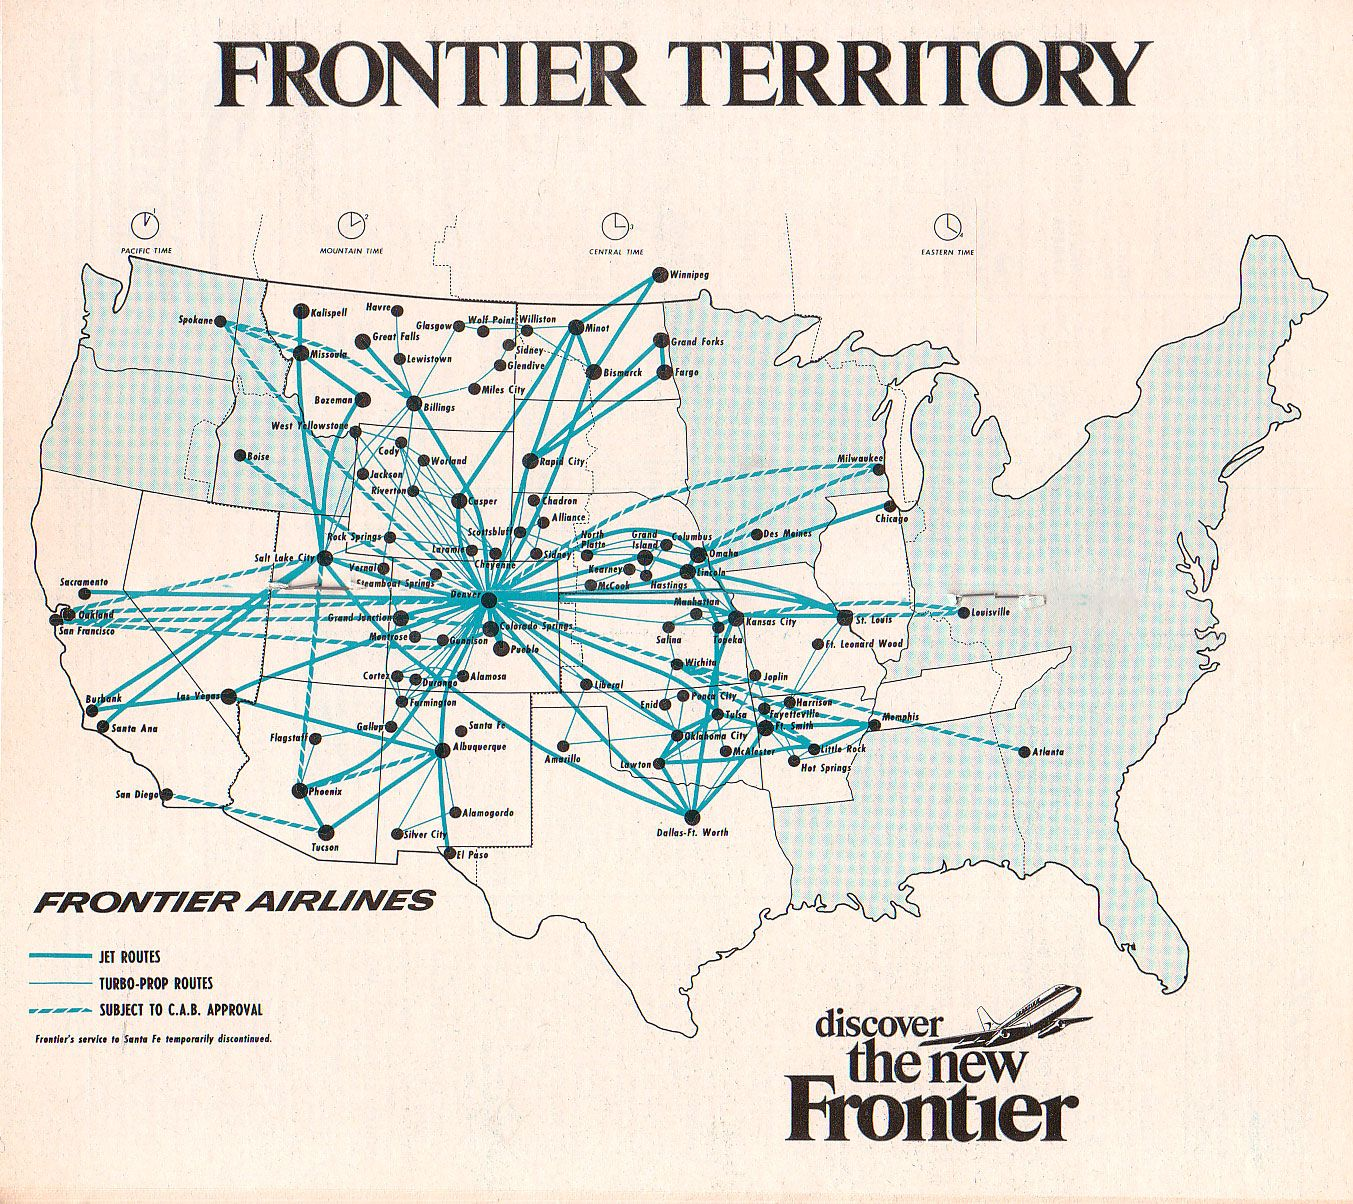 More old airline route maps. | Airline schedules, Alaska ... Airline Route Map on transportation route maps, delta airlines international maps, airline flights, shipping route maps, railroad route maps, expressjet route maps, klm route maps, airline malaysia airbus a380, stagecoach route maps, airline british airways, flight route maps, jetblue route maps, airline schedules, delta global route maps, airline fares, airline jobs, air route maps, tour operator route maps,